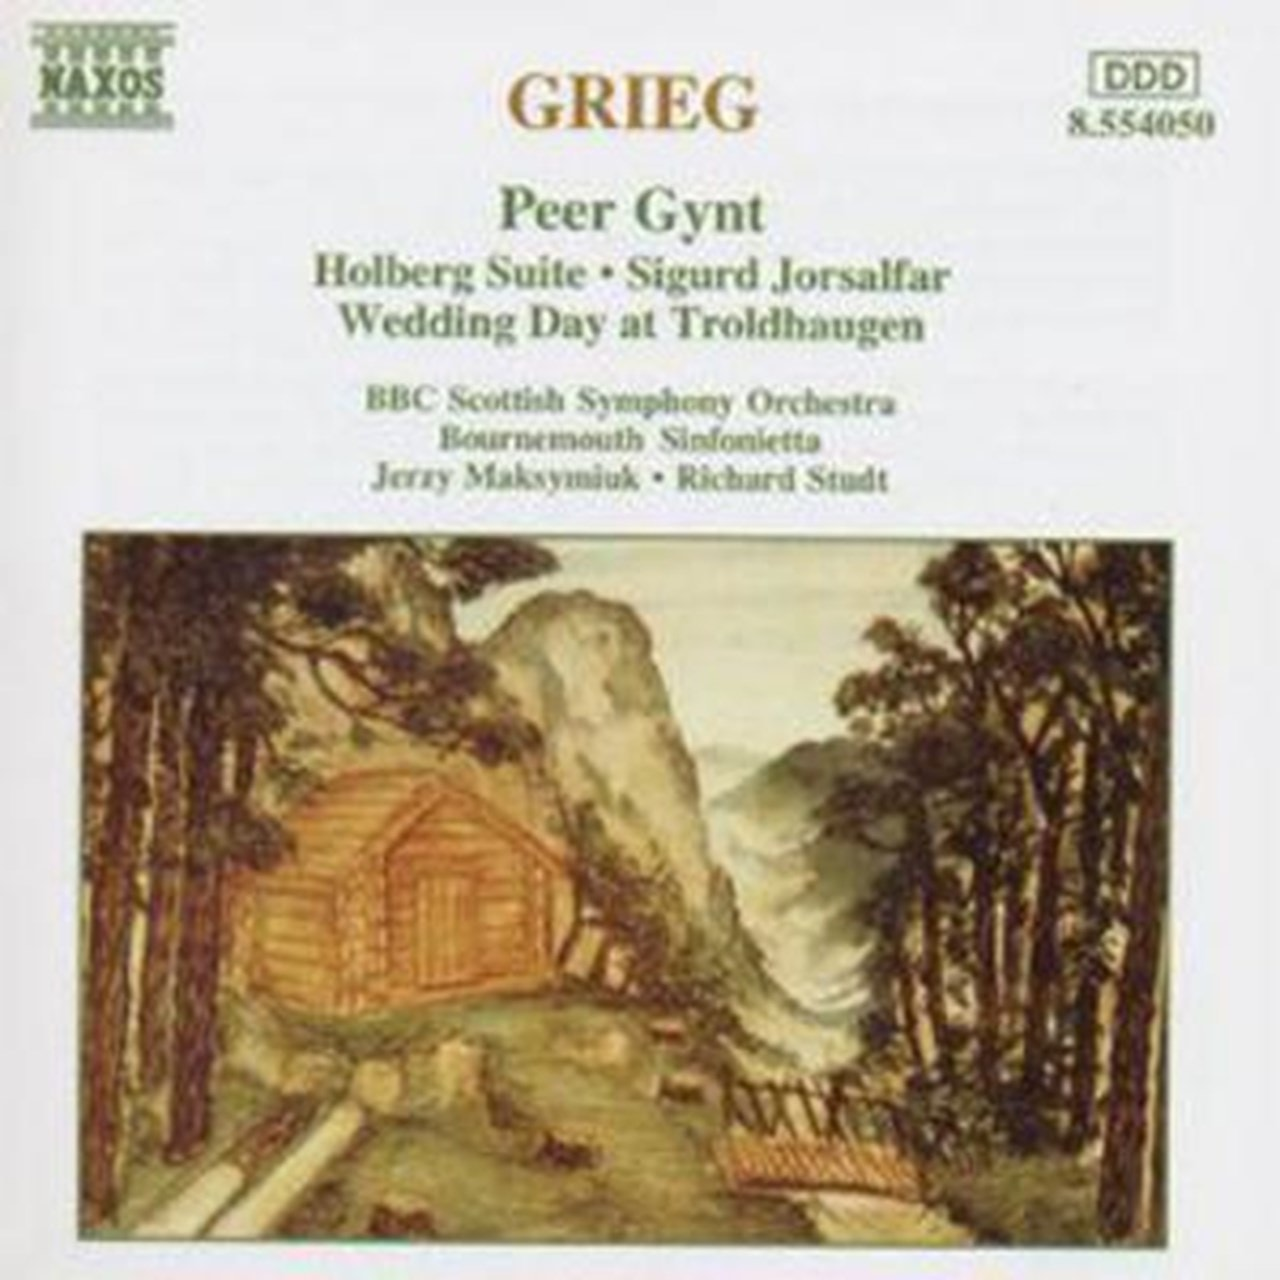 Grieg: Orchestral Music - 1